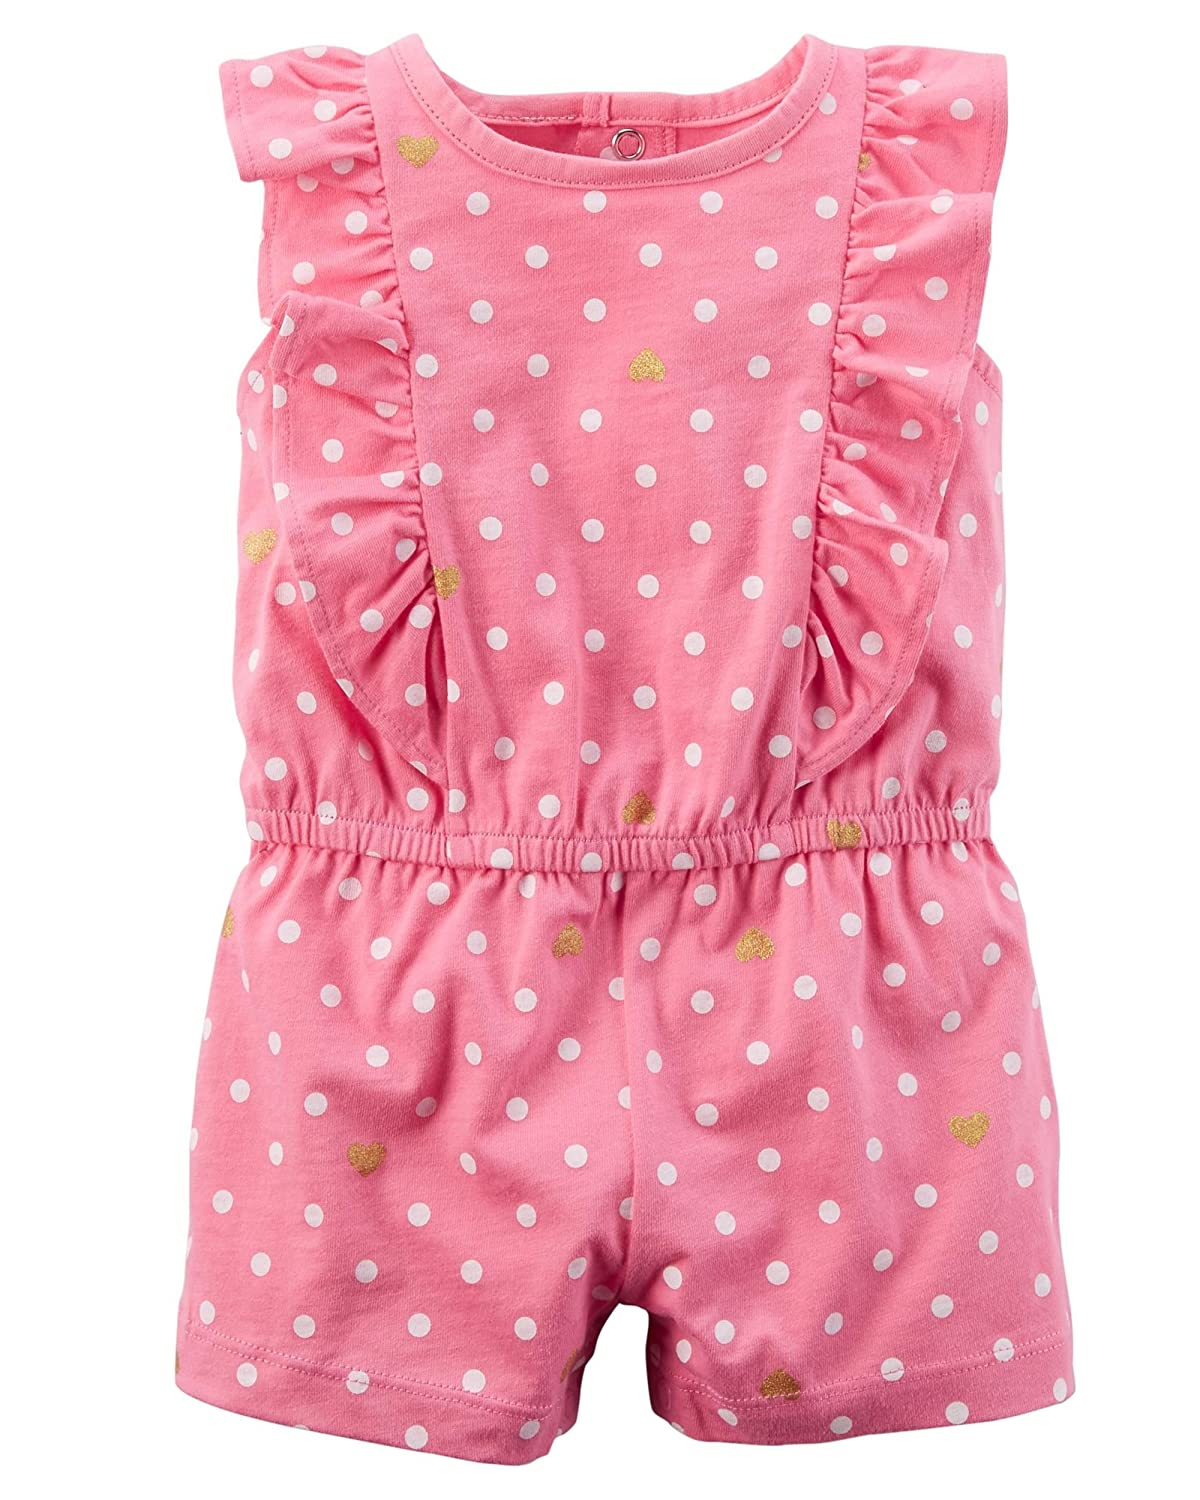 Carters Baby Girls Polka Dot Heart Print Romper